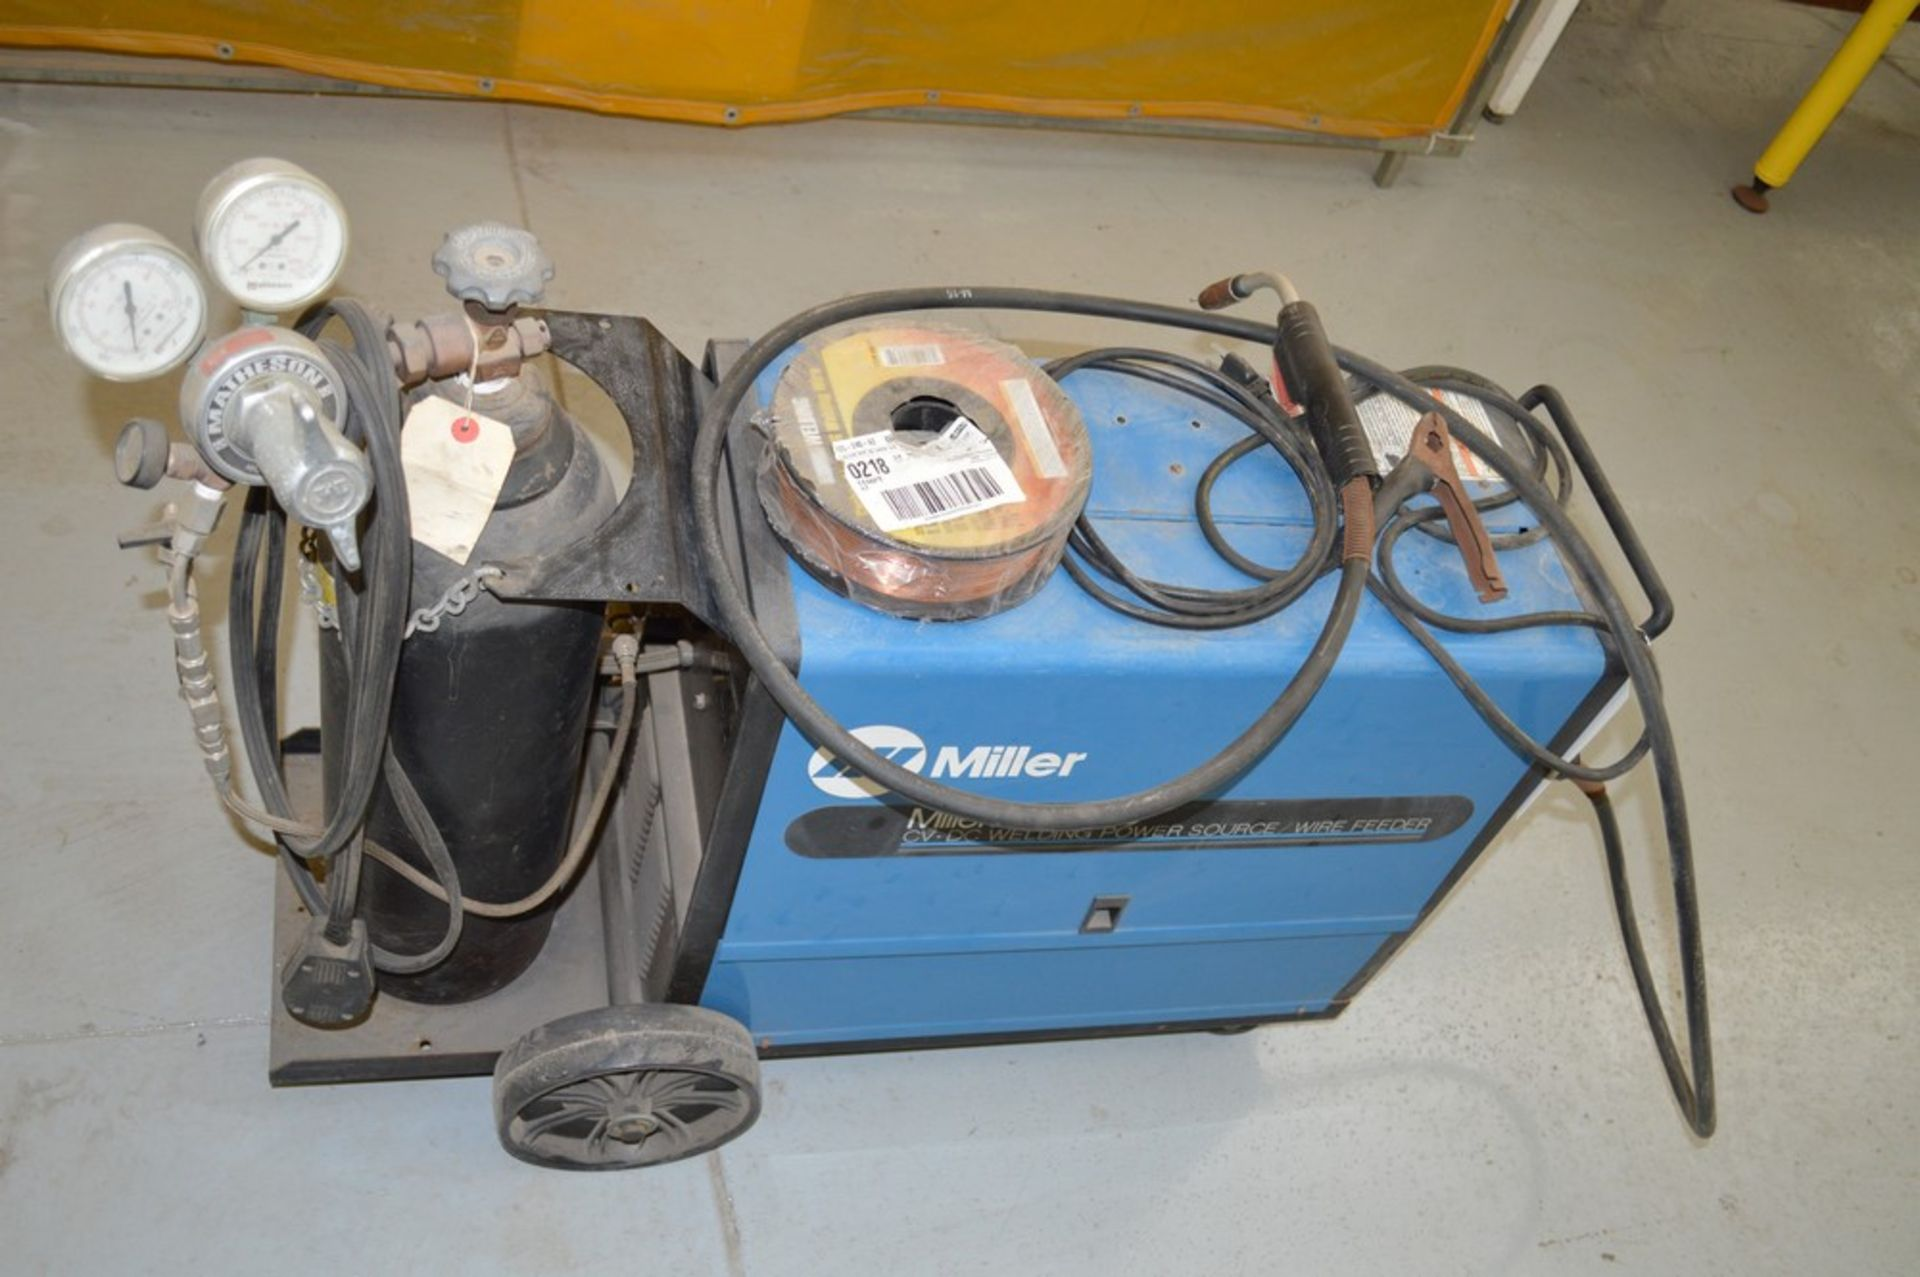 Miller Millermate 150 MIG welder with rolling cart with extra spoil of wire and small argon tank - Image 4 of 4